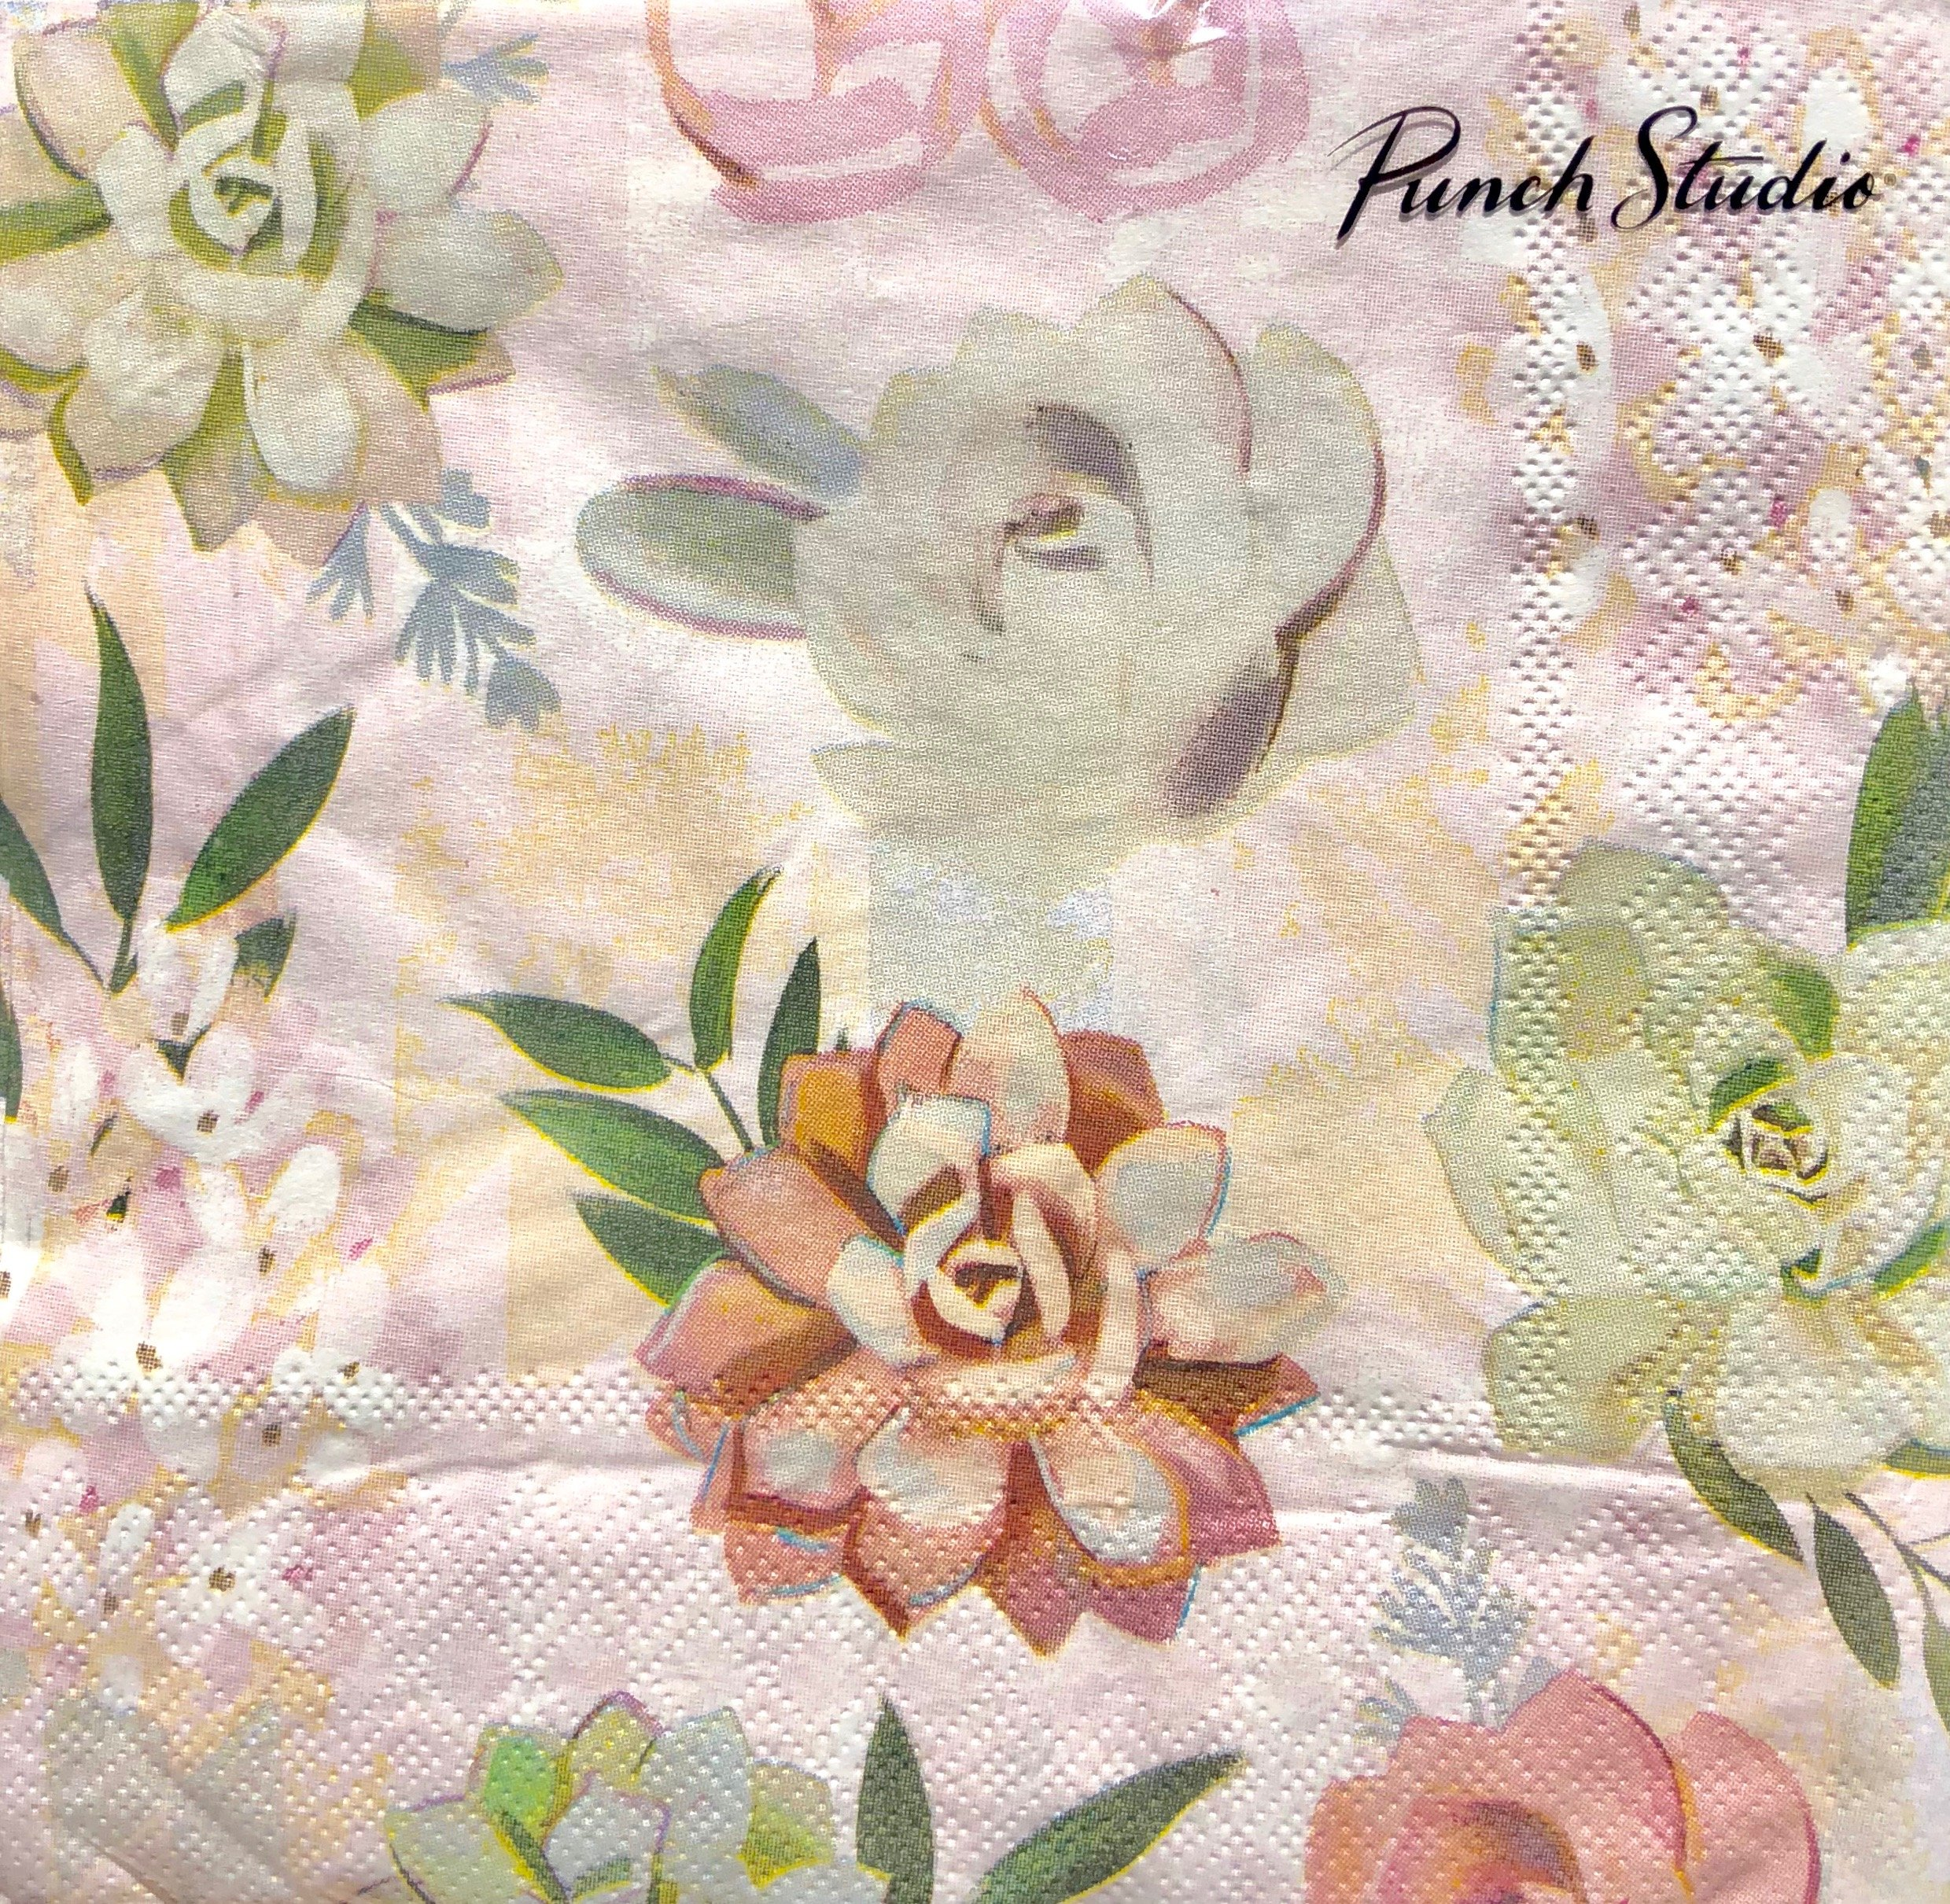 Punch Studio Muted Succulent Paper Luncheon Napkins 12669, Set of 40